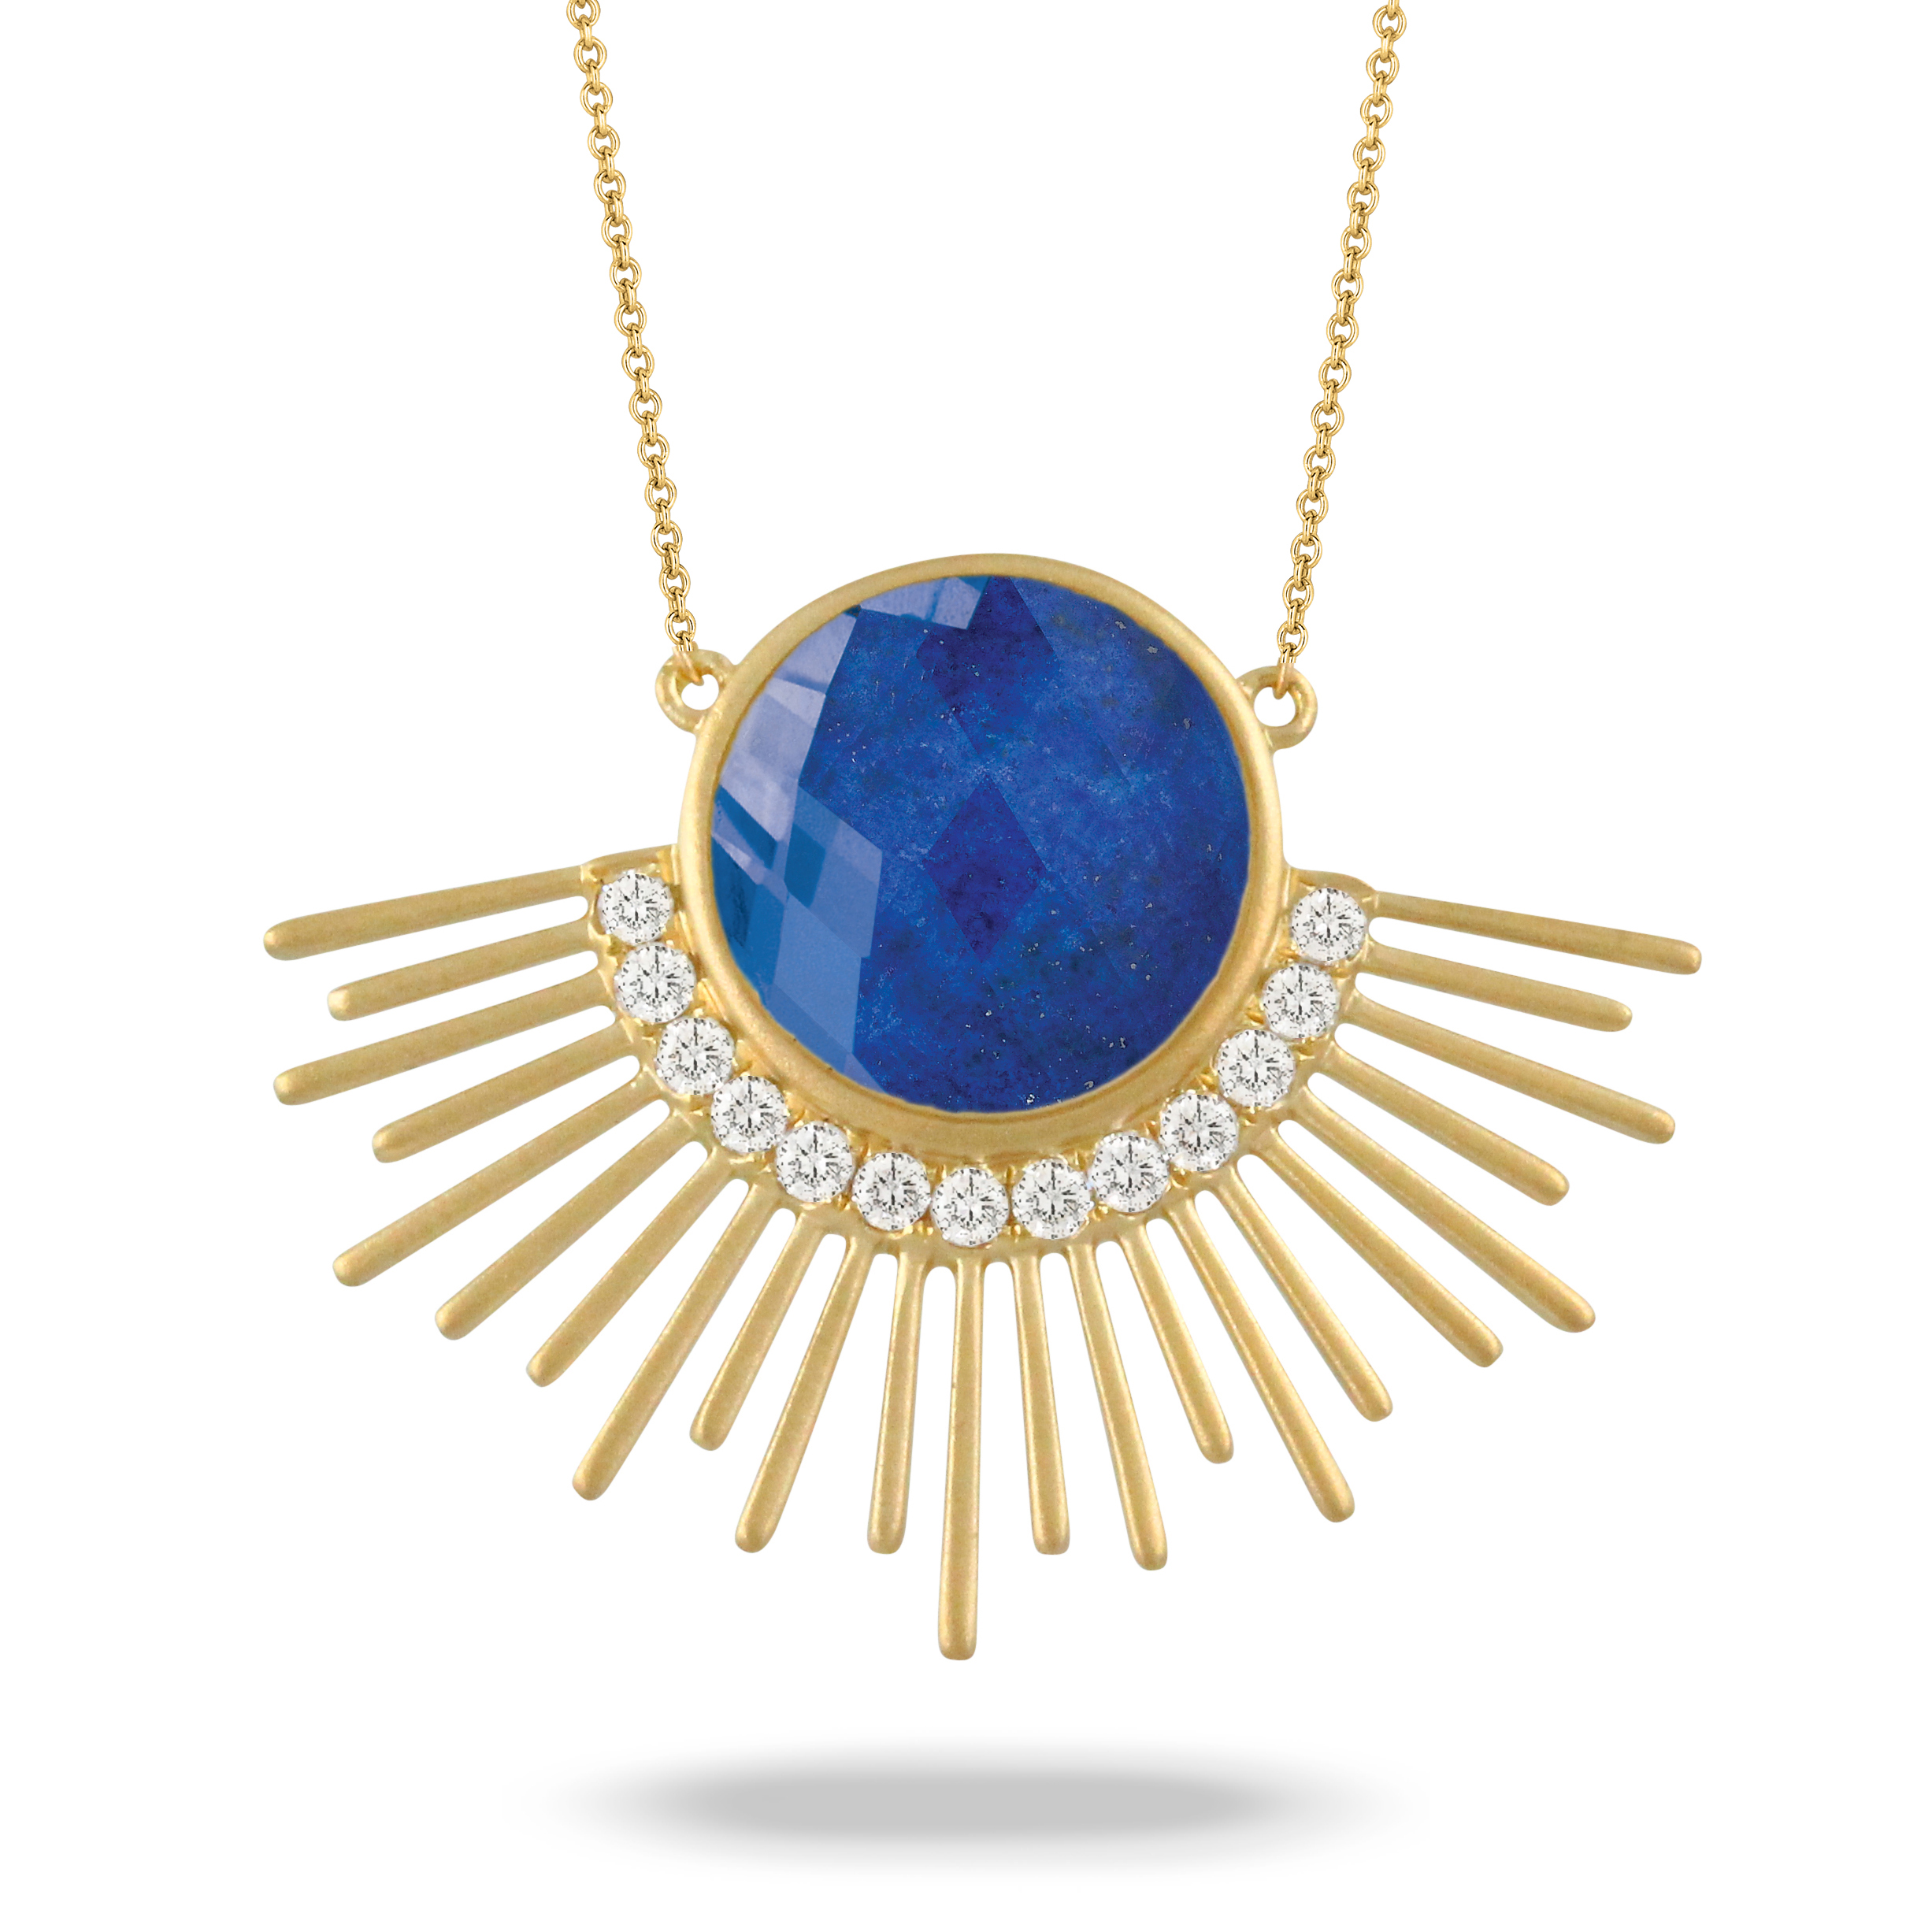 18K Yellow Gold Lapis Lazuli Necklace - 18K Yellow Gold Diamond Necklace With Clear Quartz Over Lapis In Satin Finish